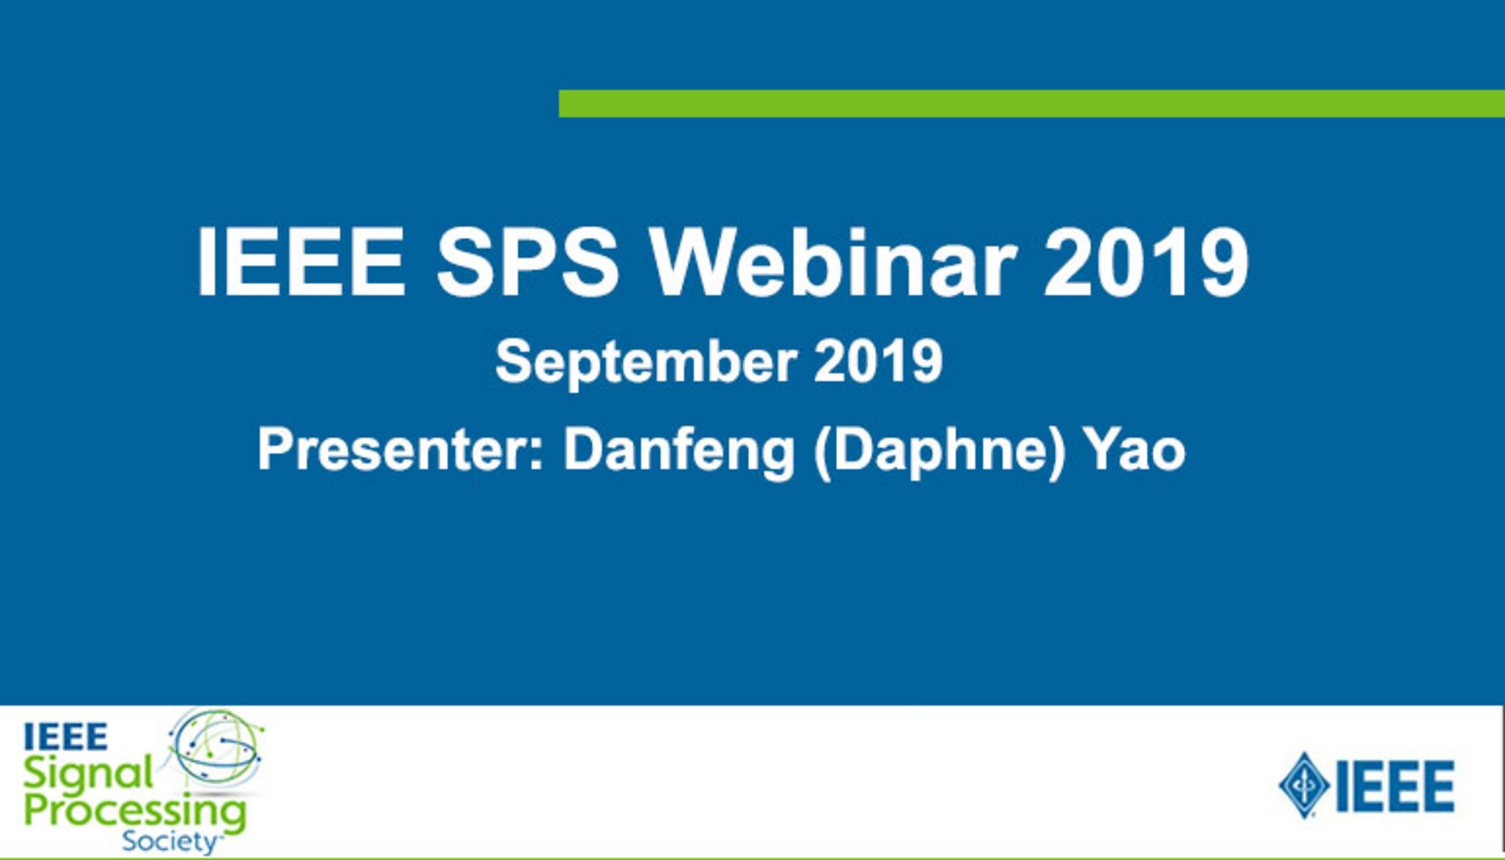 SPS Webinar: Data Breaches and Multiple Points to Stop Them. By Danfeng (Daphne) Yao